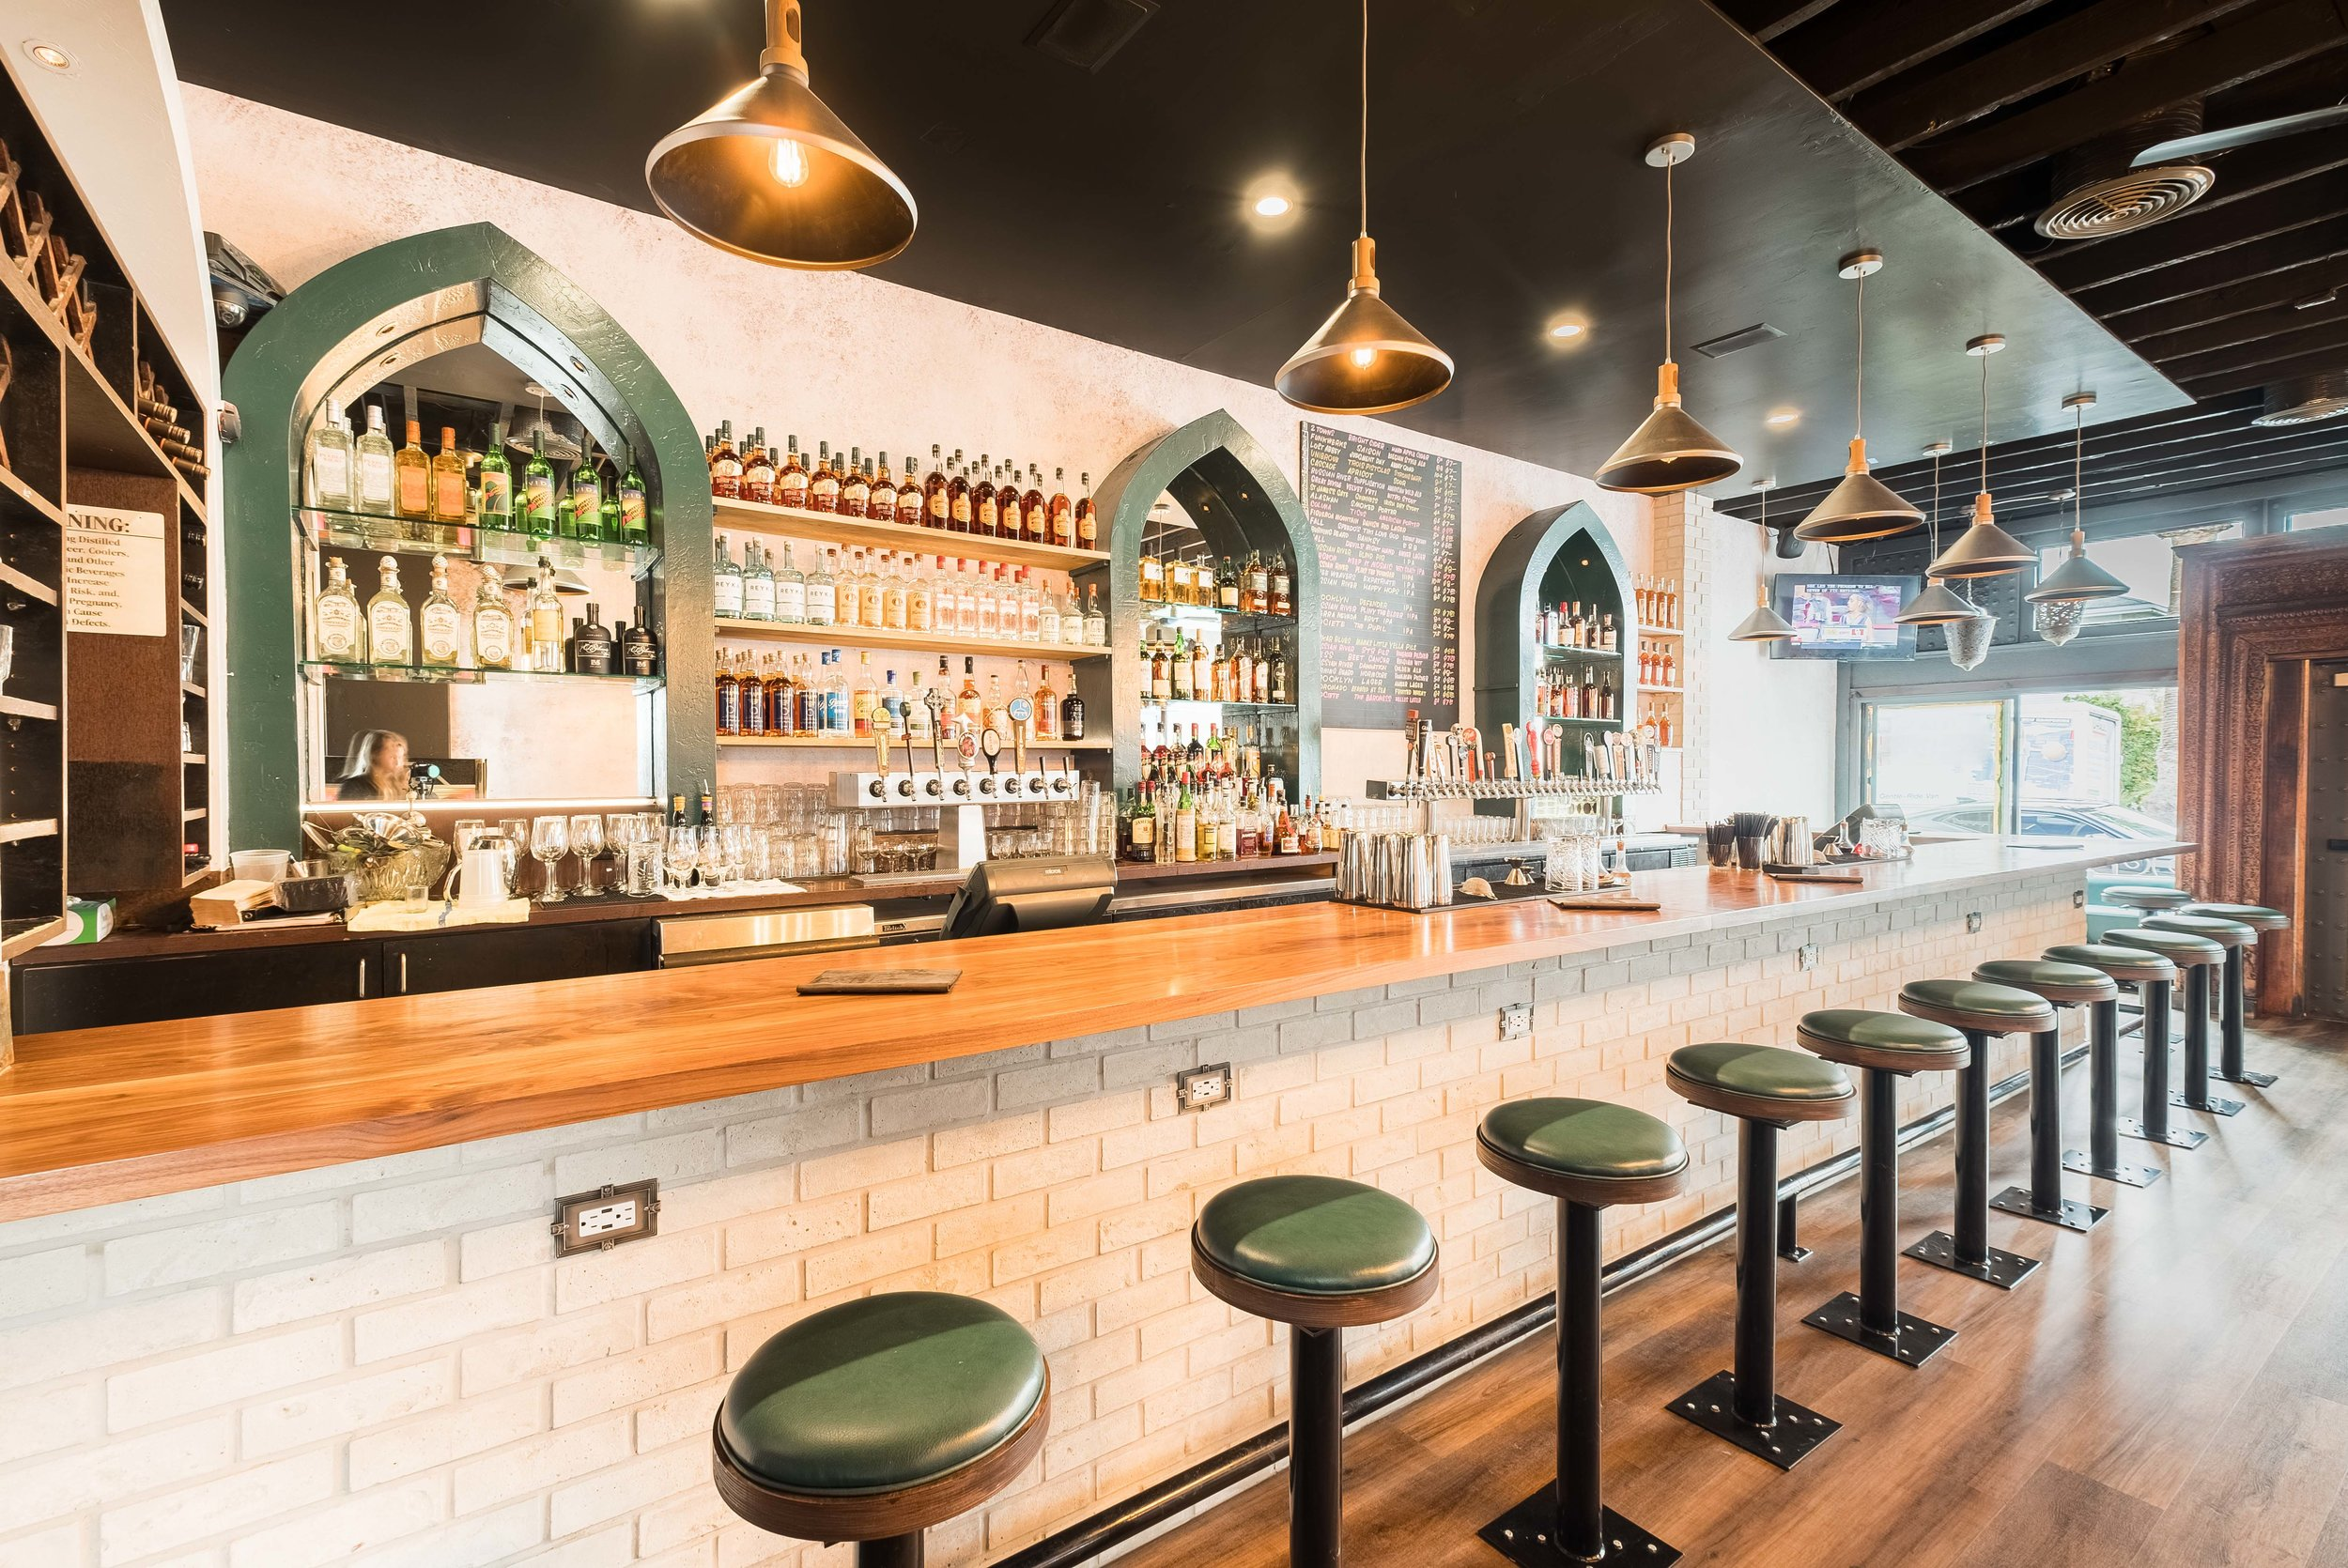 Bar view showing interior with beer taps, sprits and barstool seating